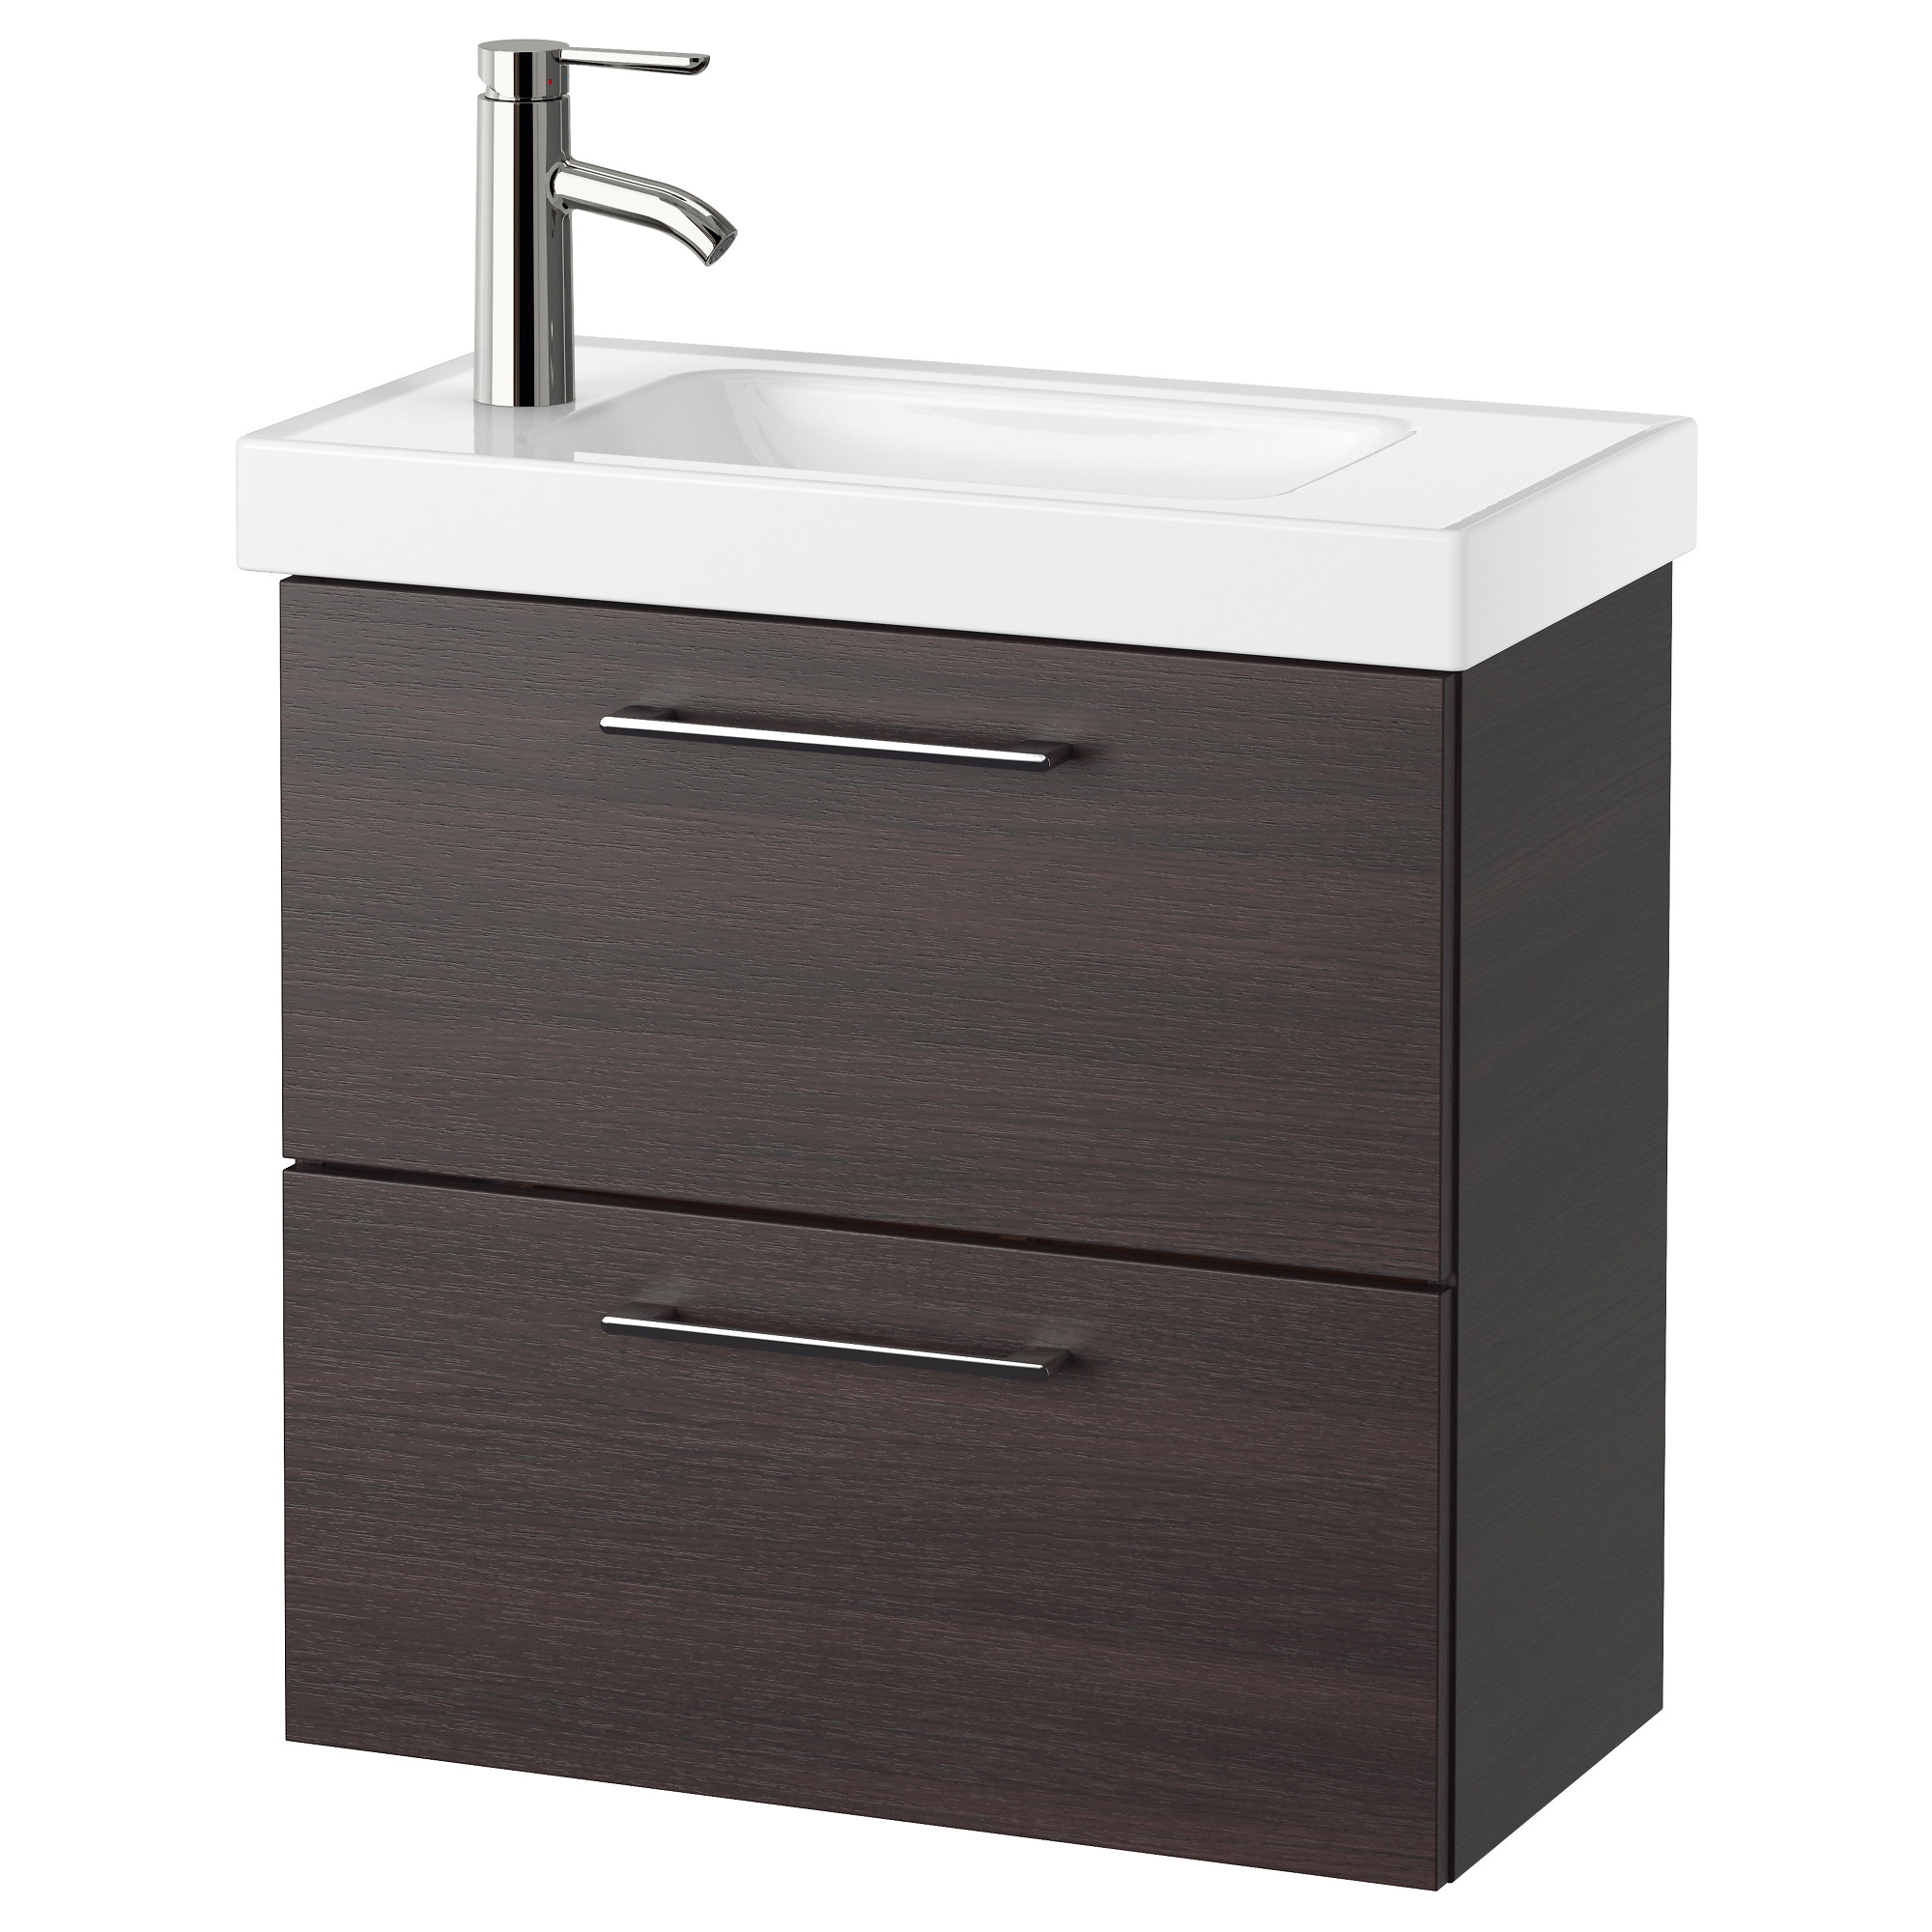 Design Sink Cabinets bathroom vanities countertops ikea godmorgon hagaviken sink cabinet with 2 drawers black brown width 24 3